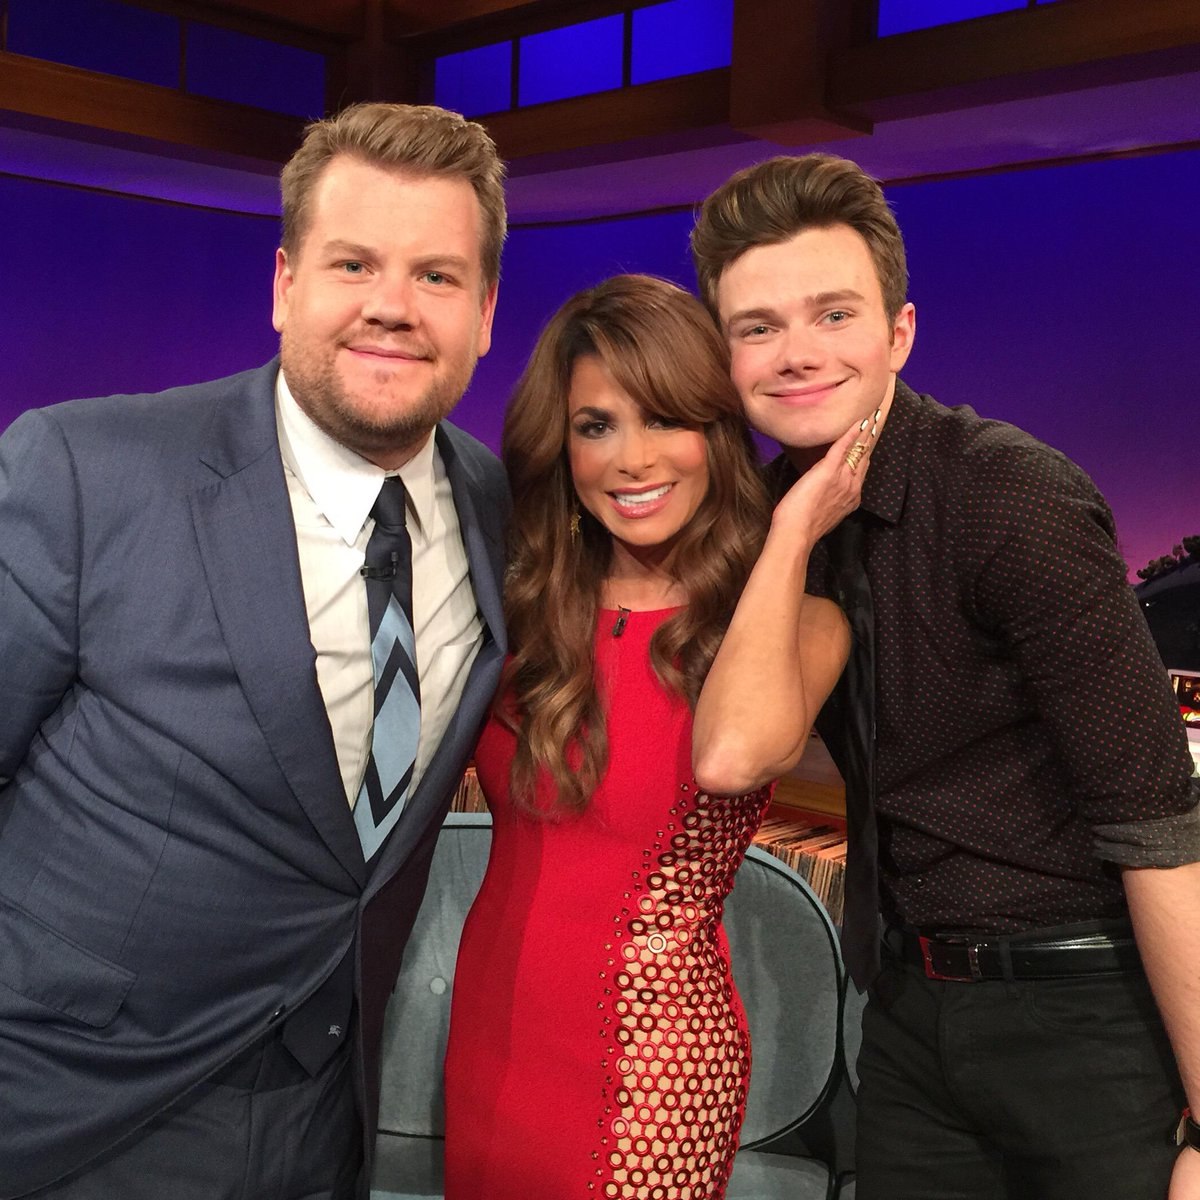 I'll be on the @latelateshow TONIGHT w/ @JKCorden & @chriscolfer BE SURE TO TUNE IN! xoP http://t.co/ryFBVw23t6